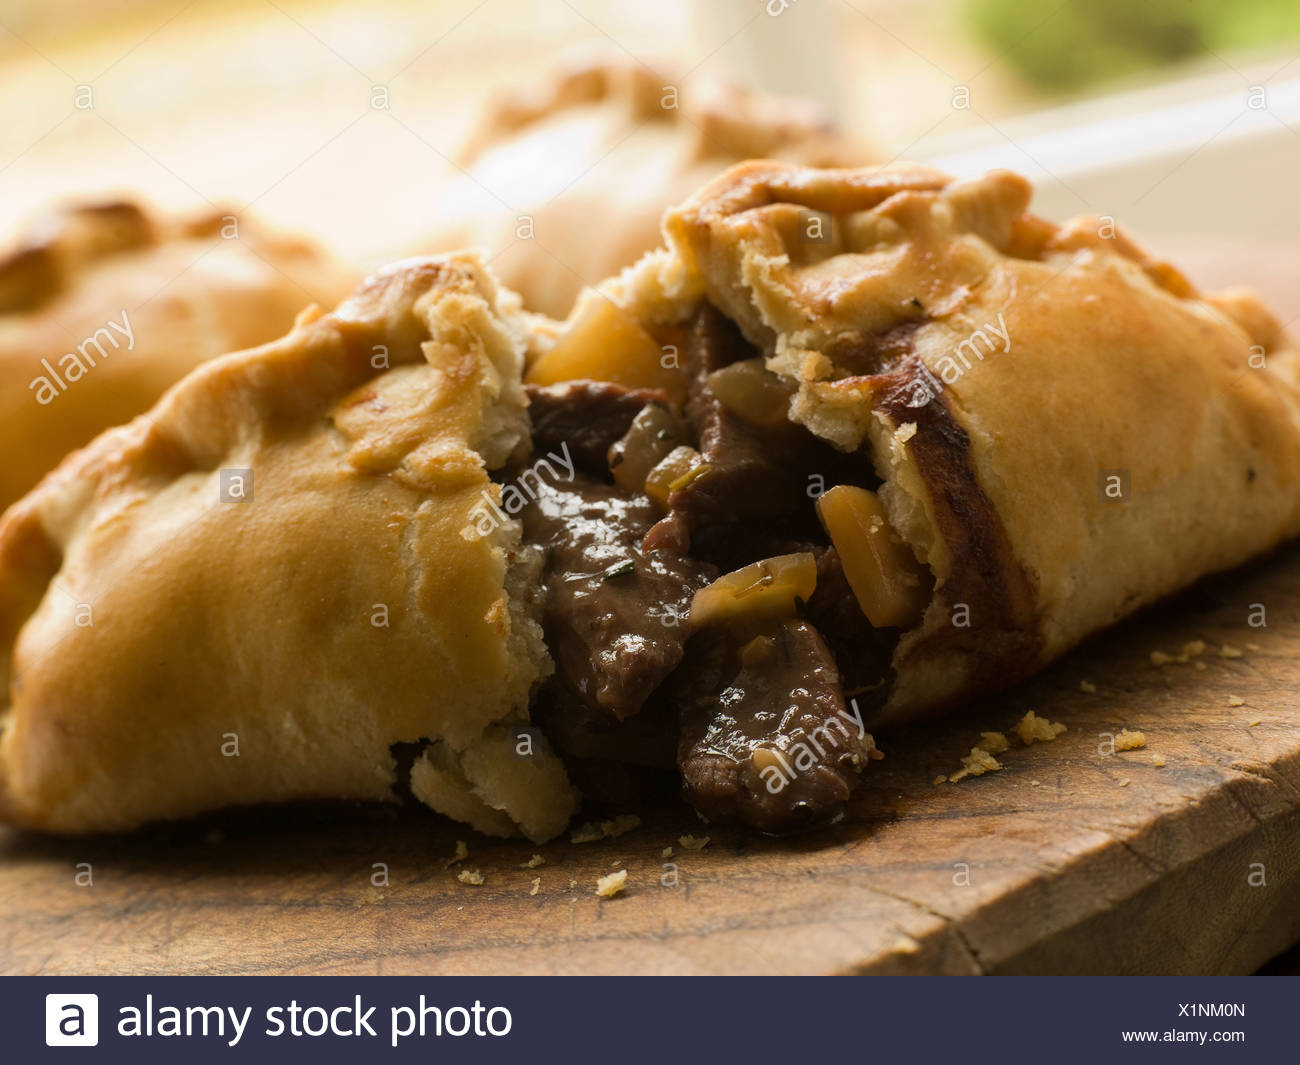 Traditional Cornish Pasty broken open - Stock Image